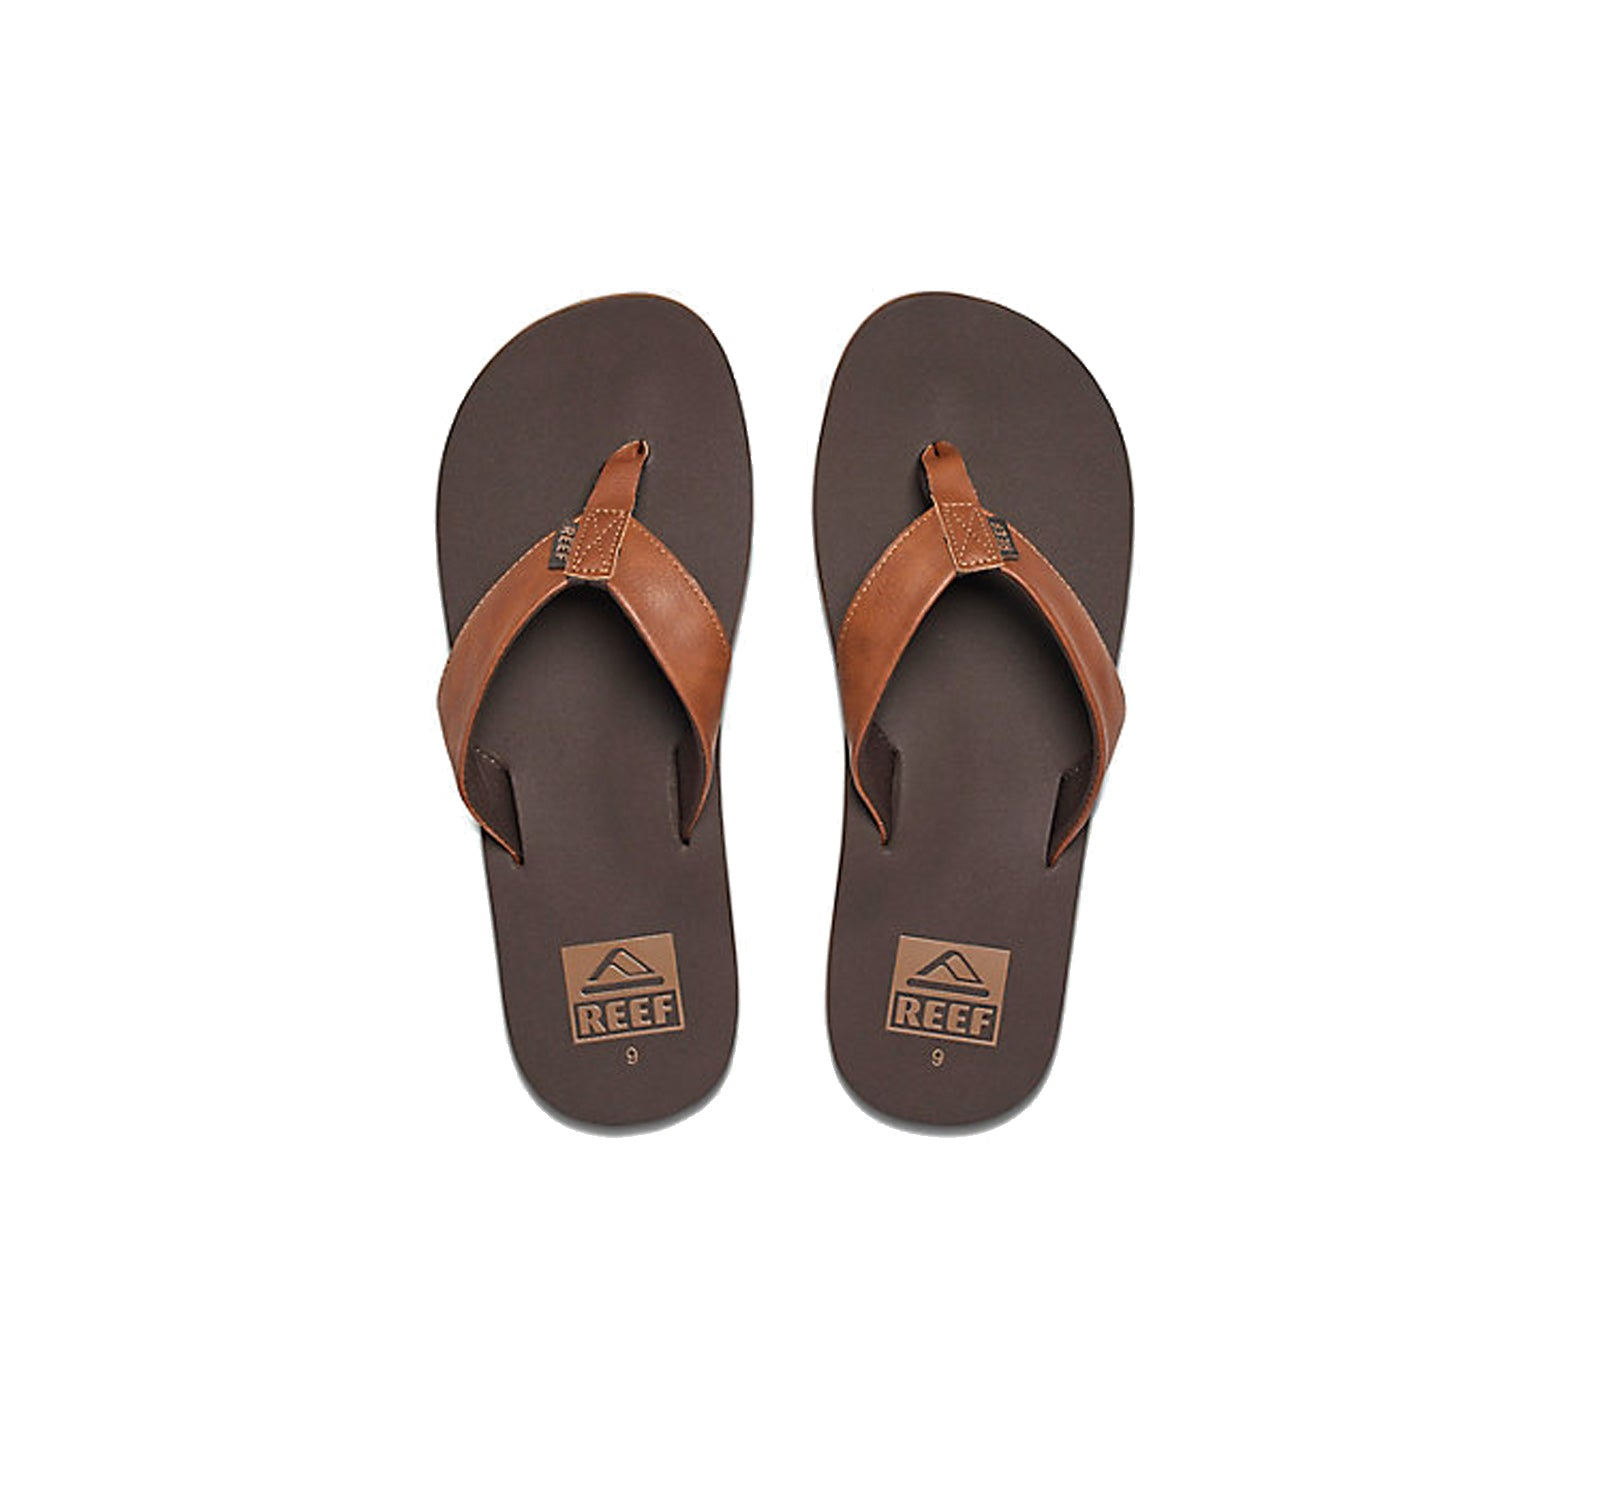 Reef Twinpin Men's Sandals